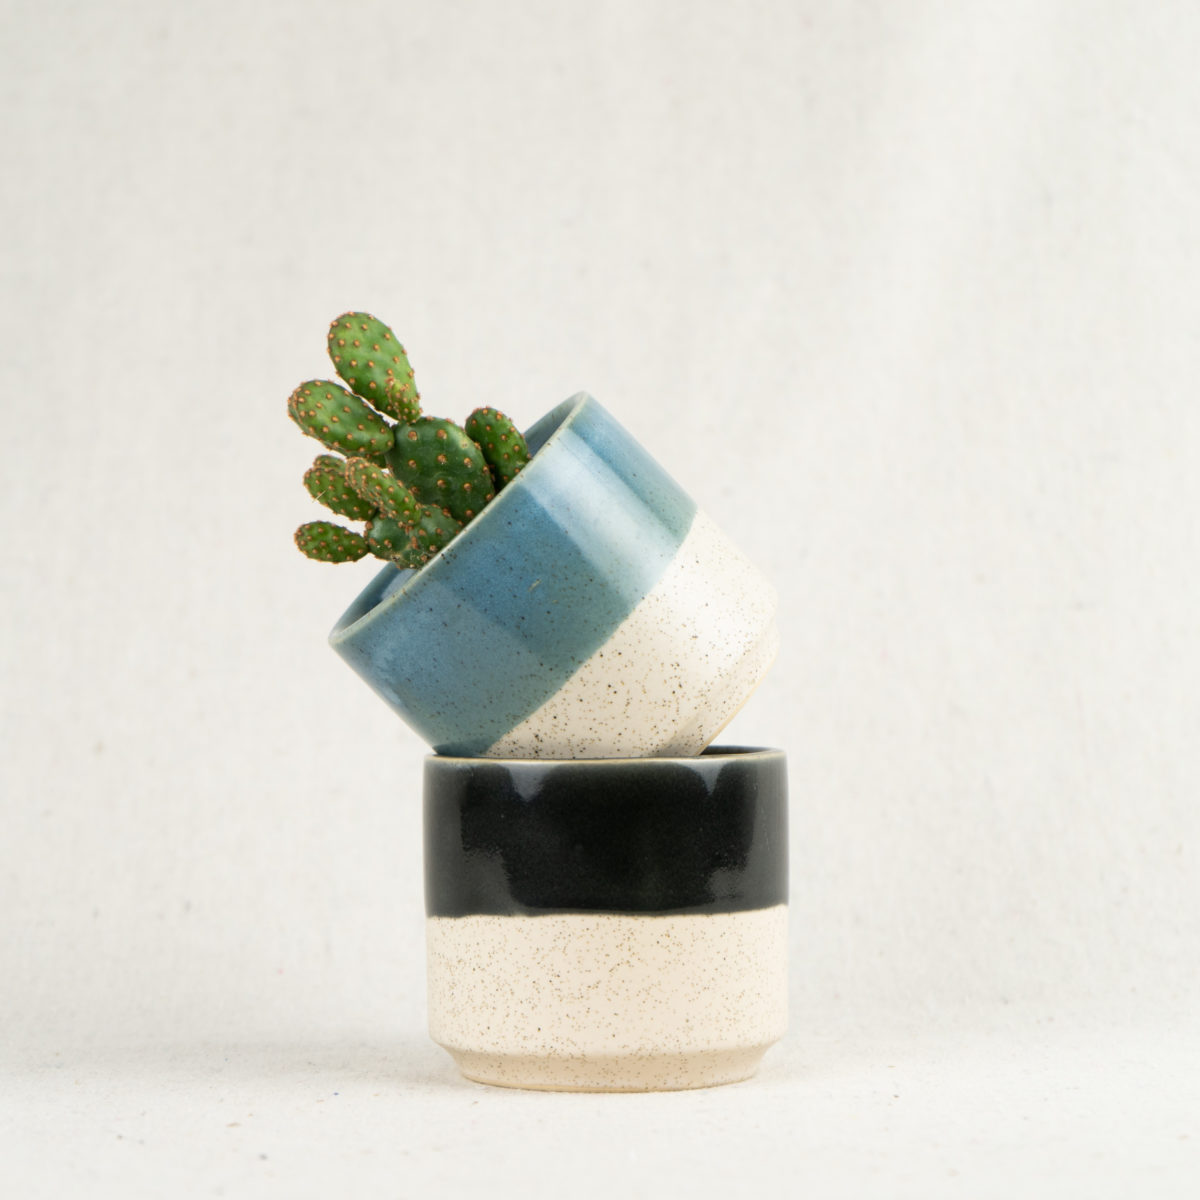 3-inch-planters